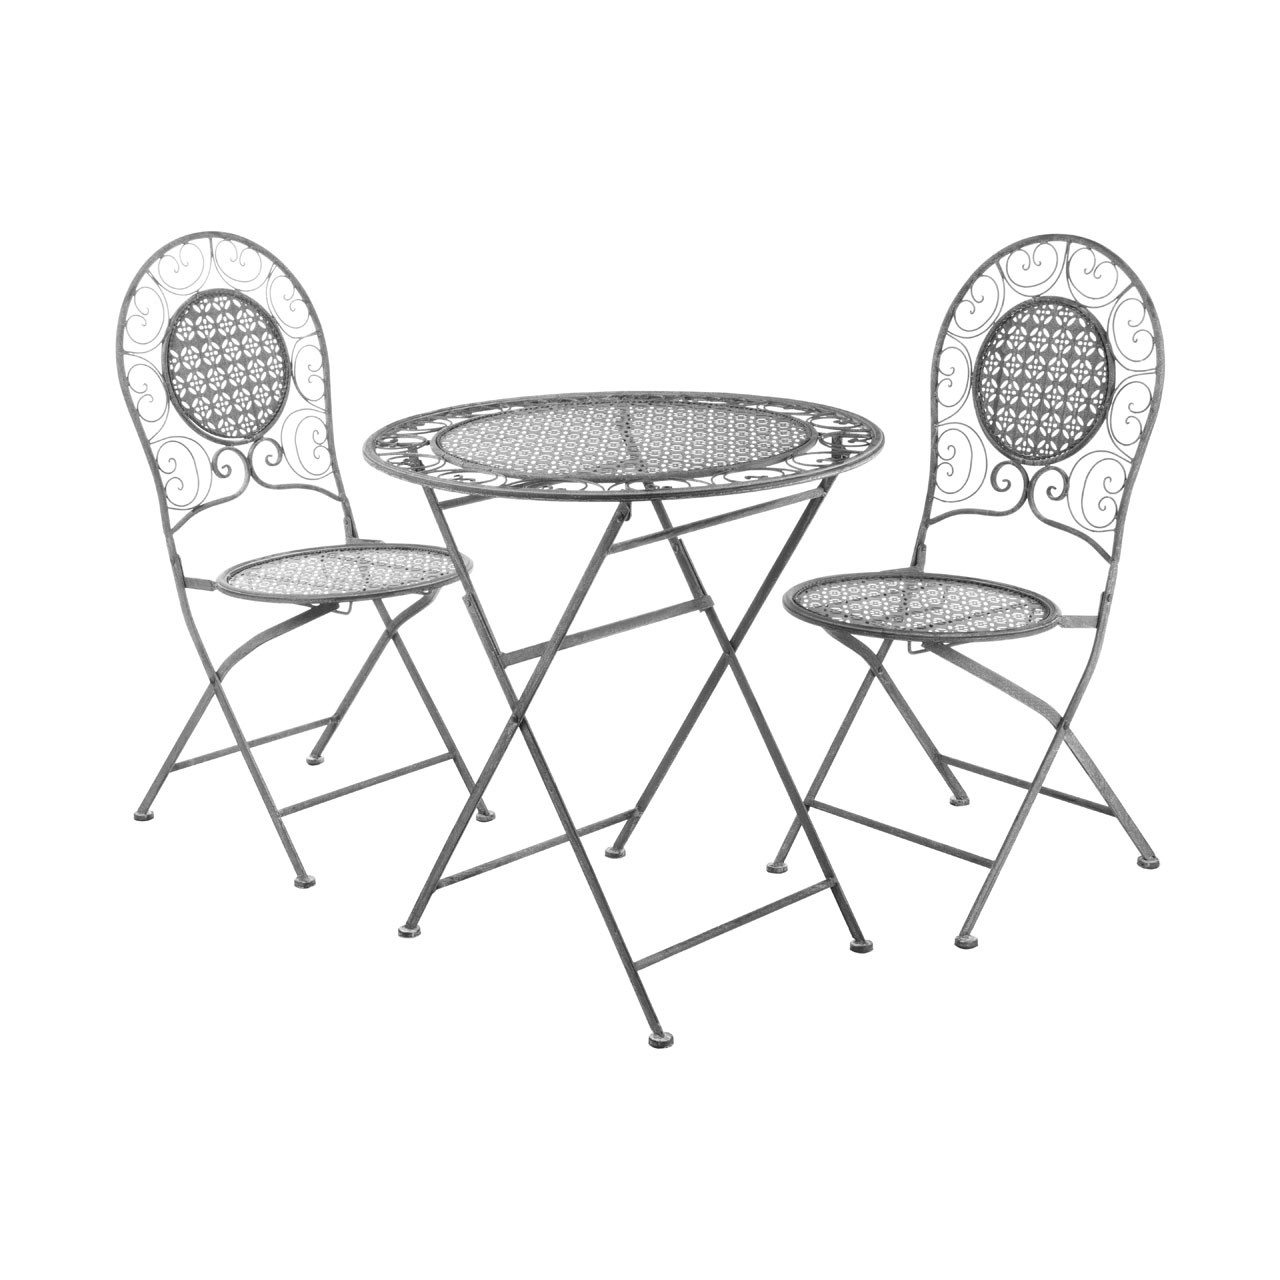 Finchwood Jardin 3pc Table Set - Grey